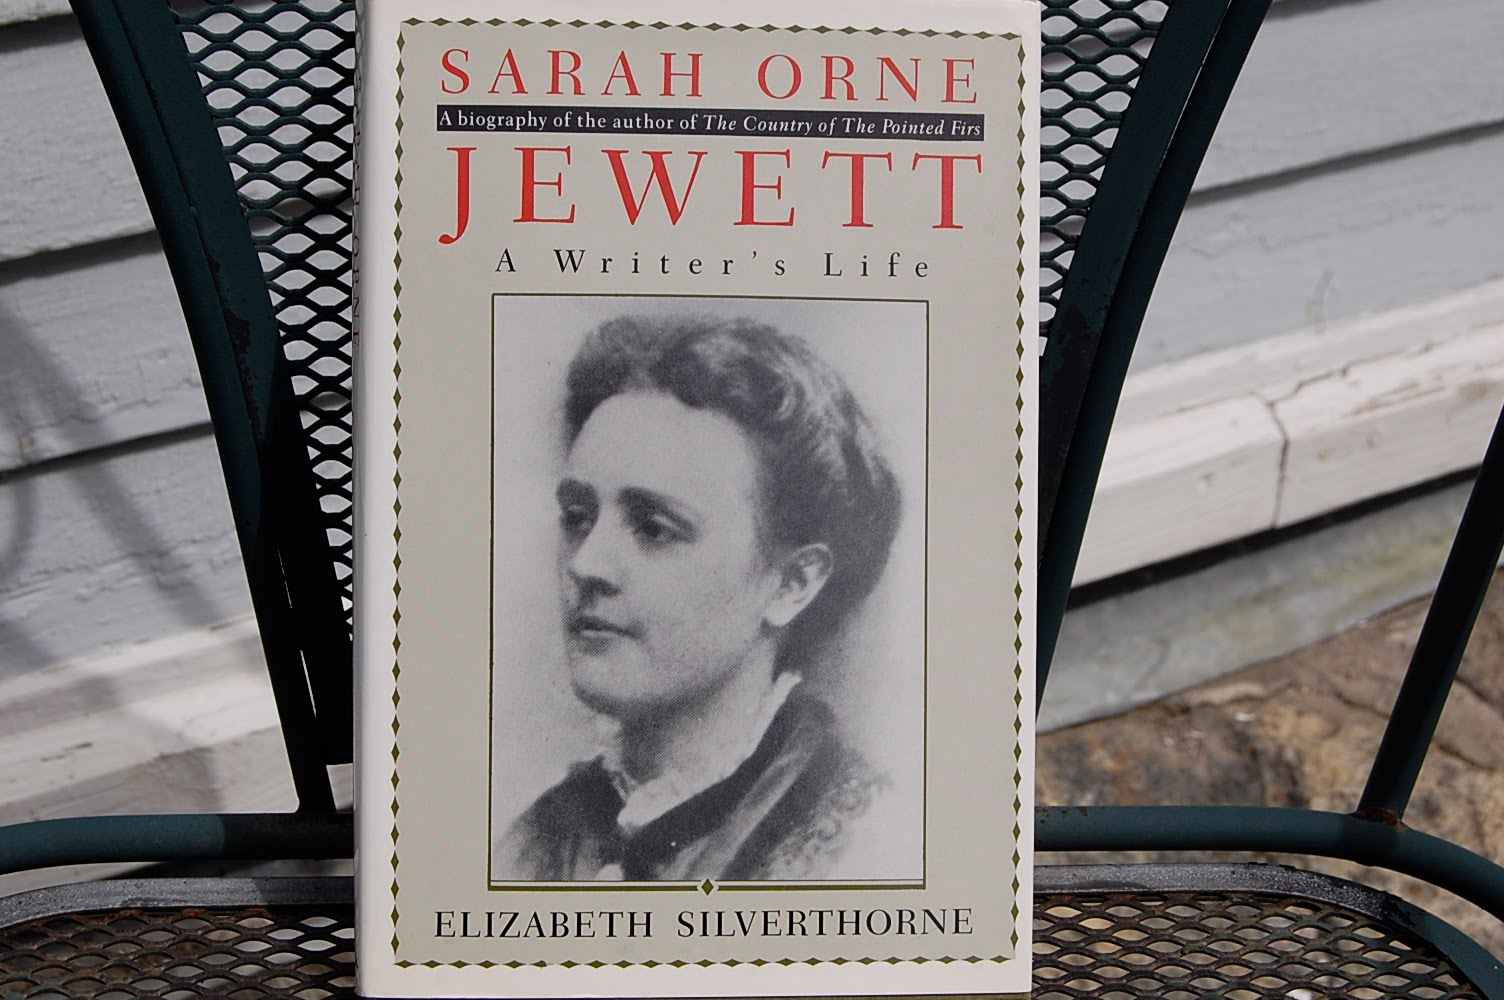 a biography of sarah orne jewett and features of her writing Homeschooling high school – language arts / english 3  the way her puritan upbringing effected her writing  will read sarah orne jewett's allegory.